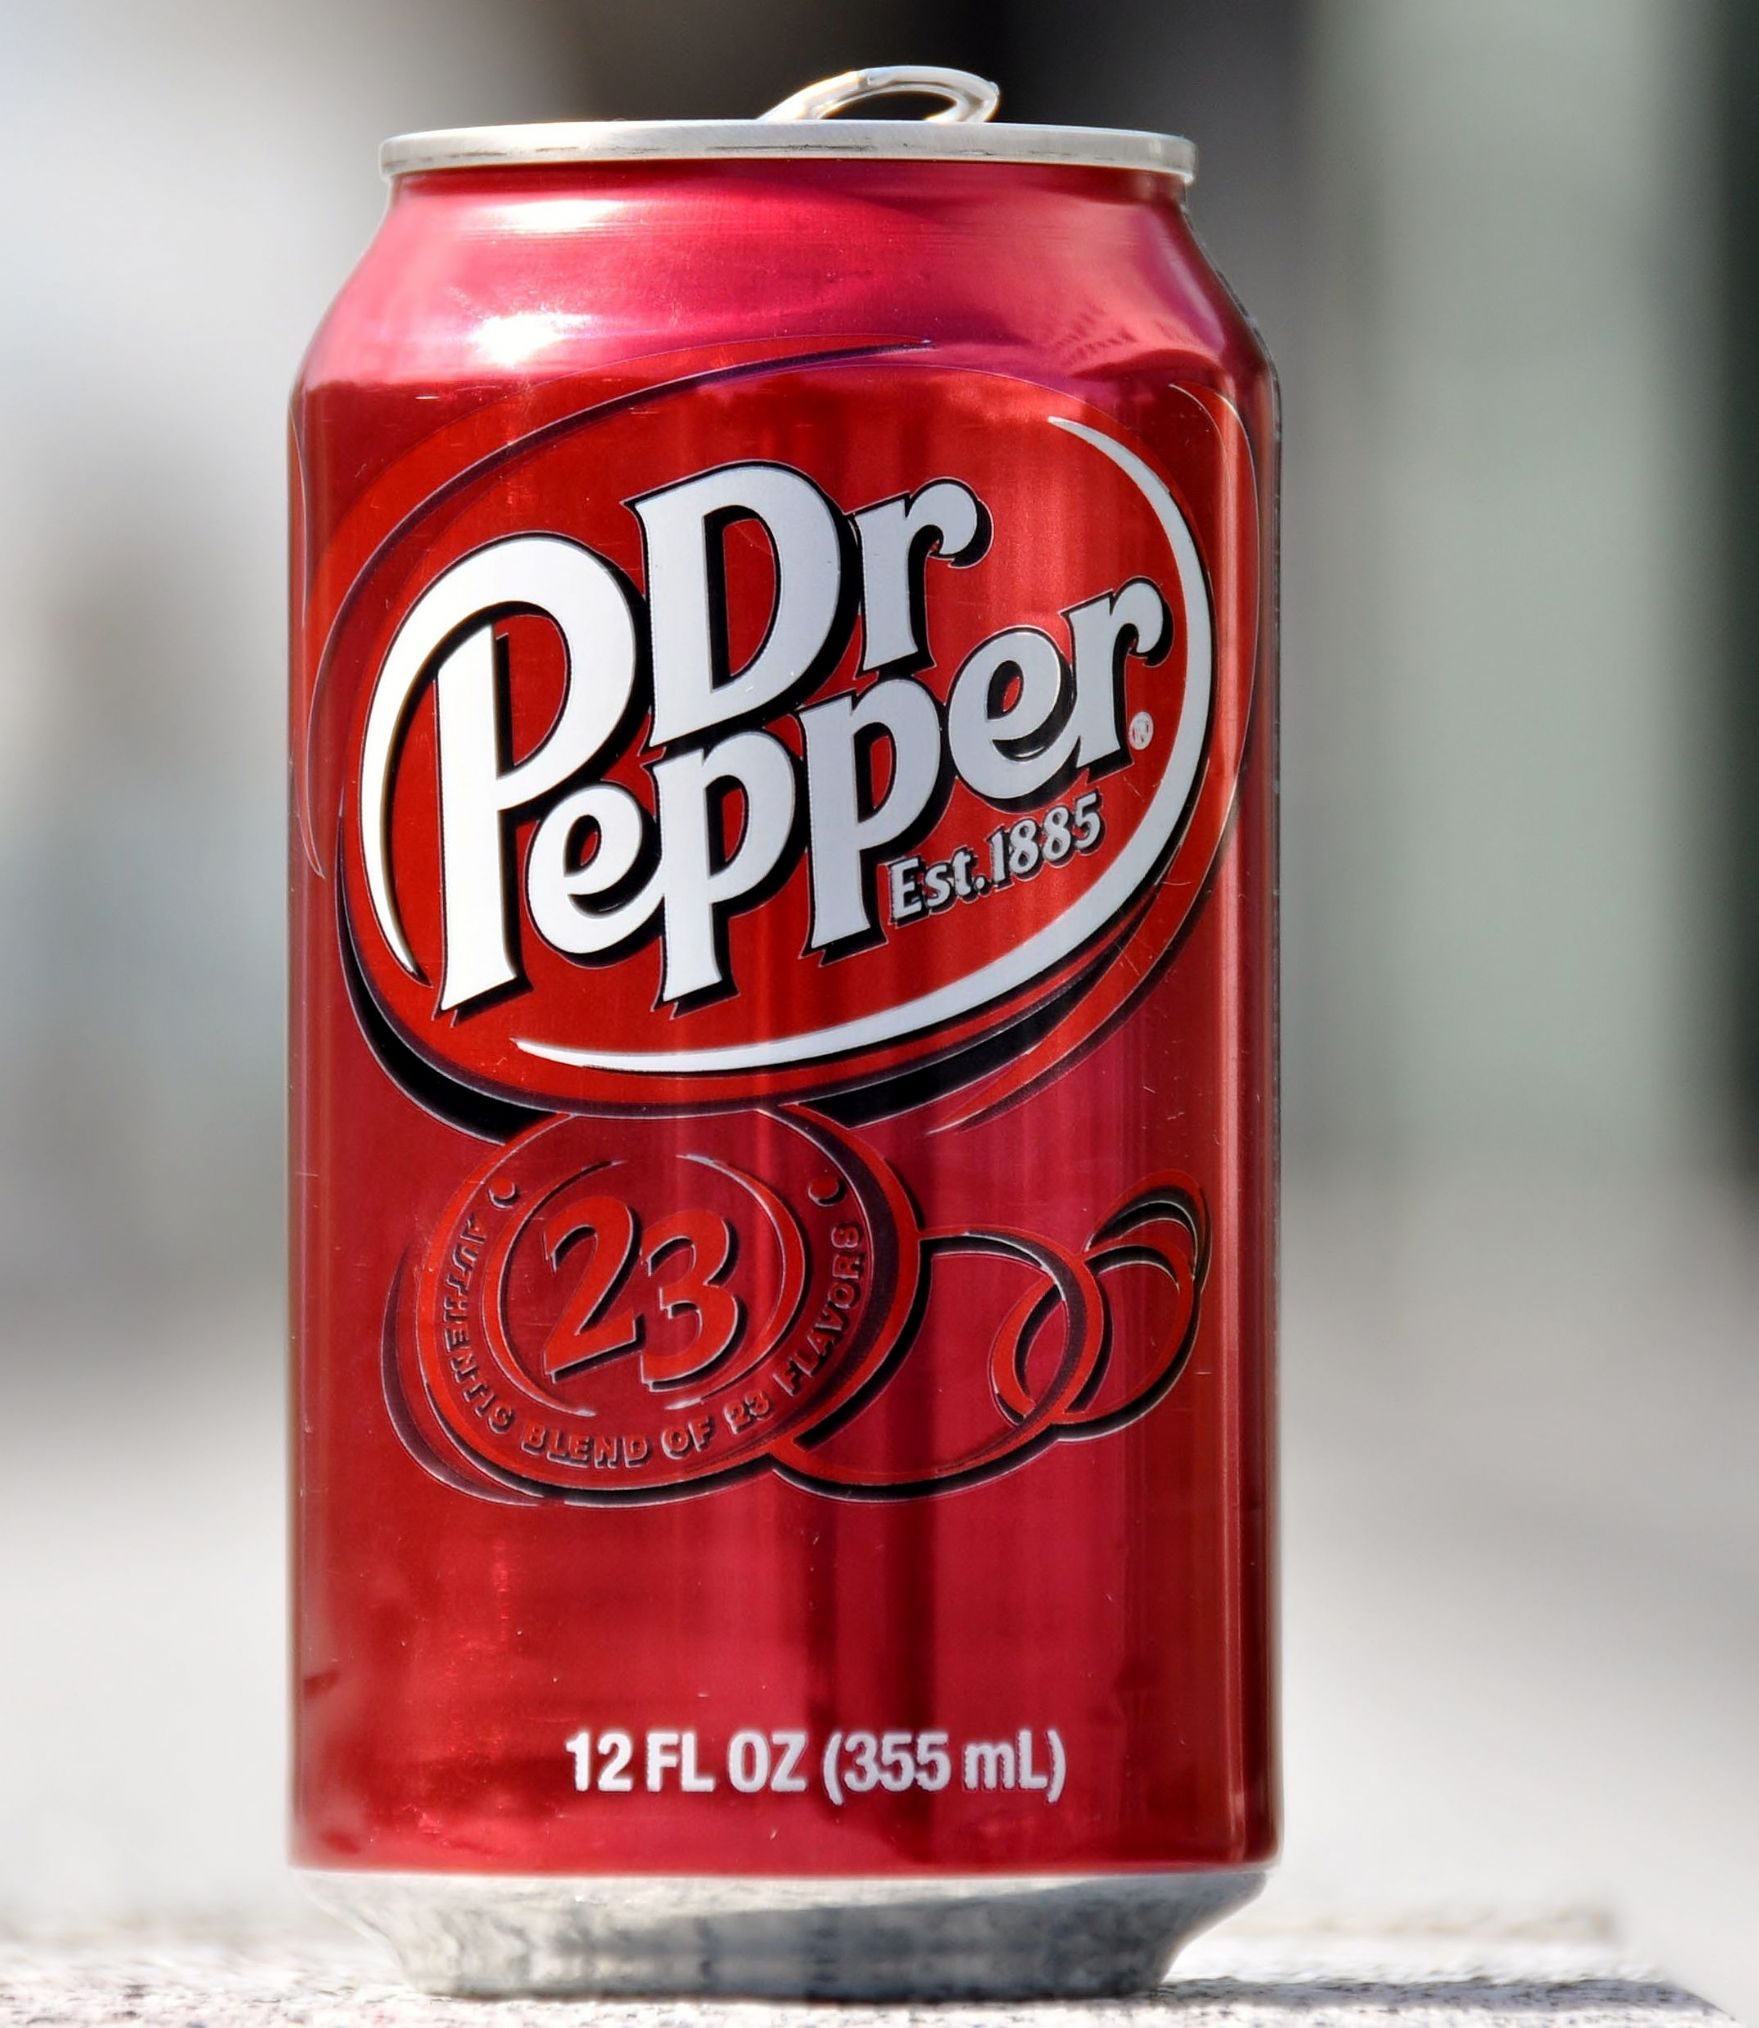 american-original-dr-pepper-soda-case-of-12-cans-dated-17-11-14-[2]-11595-p